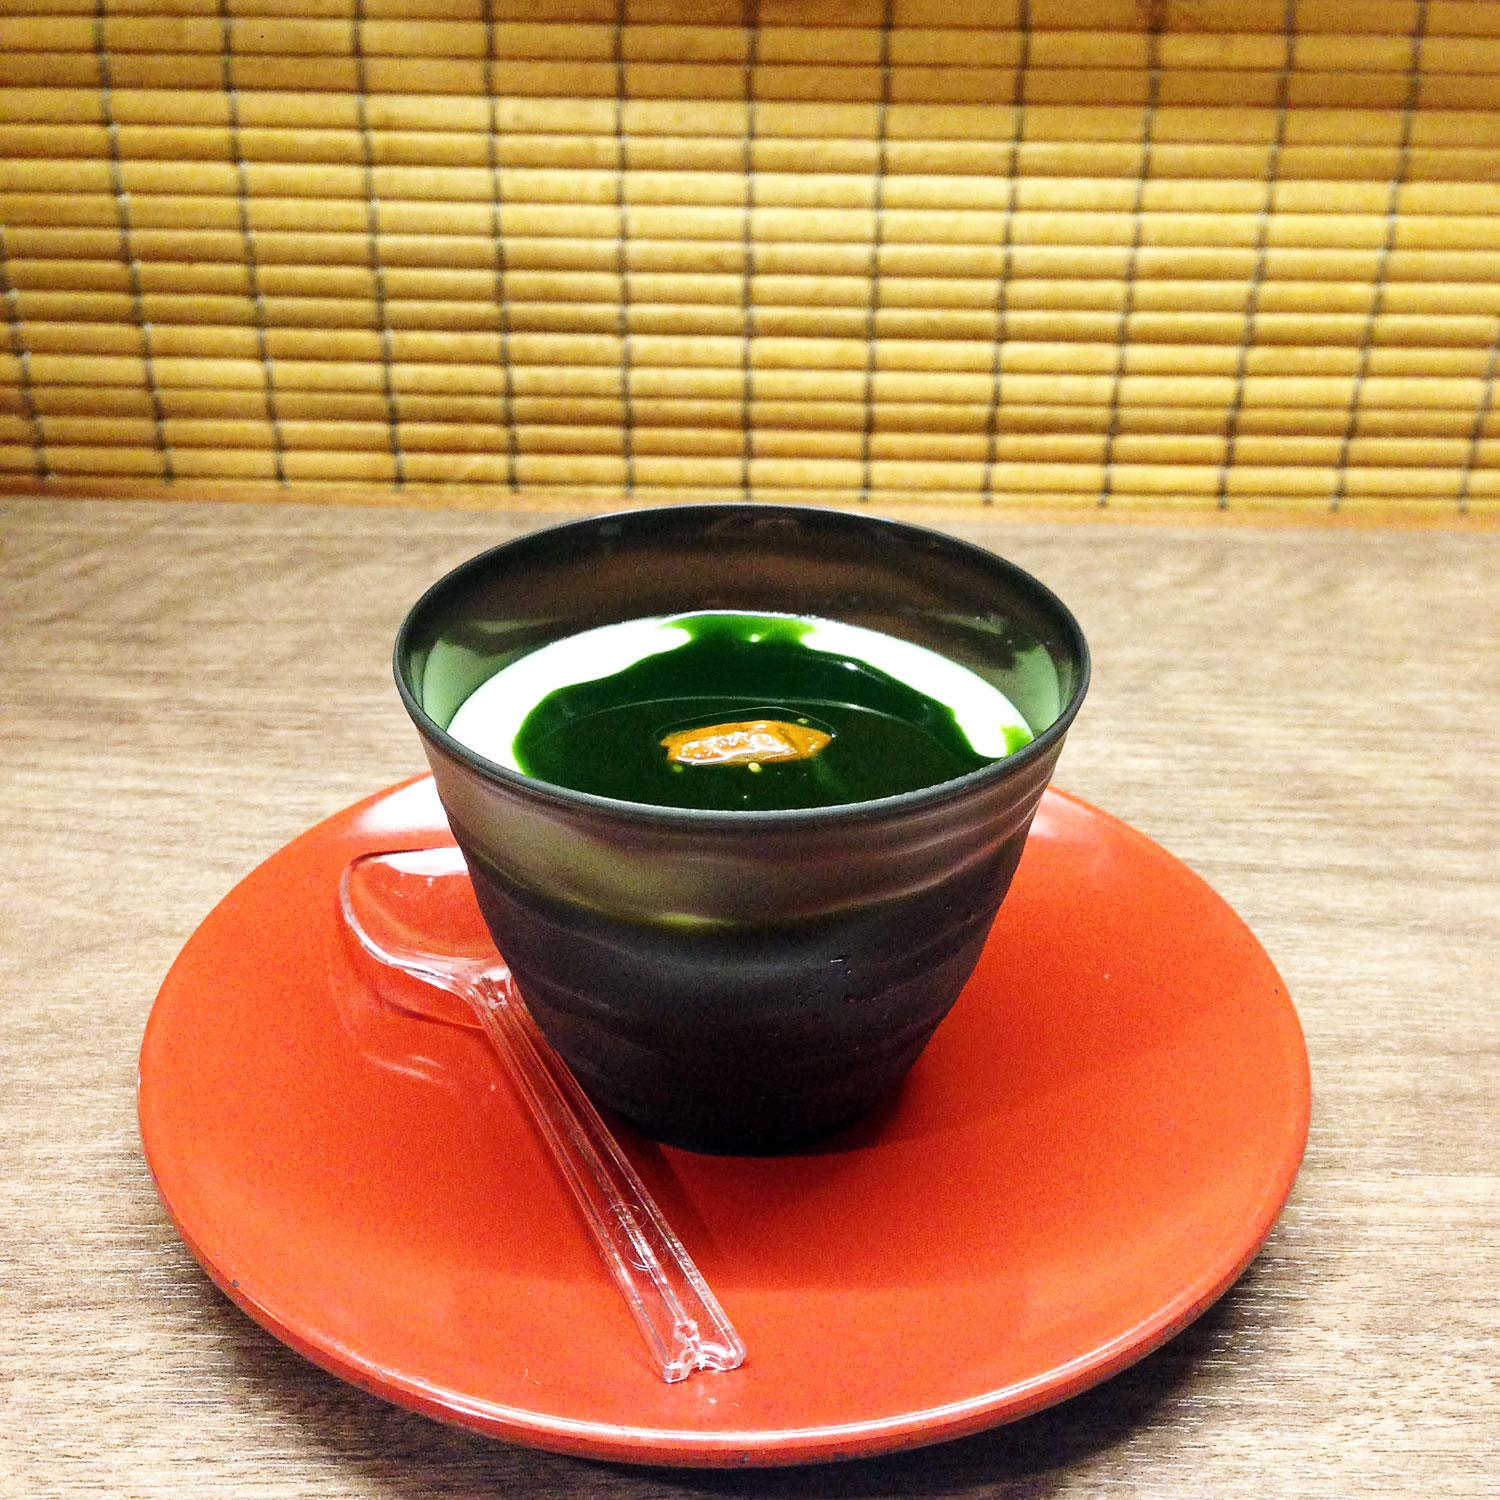 Ichiran Ramen: A Dining Experience without any Human Interaction - Almond Tofu Pudding